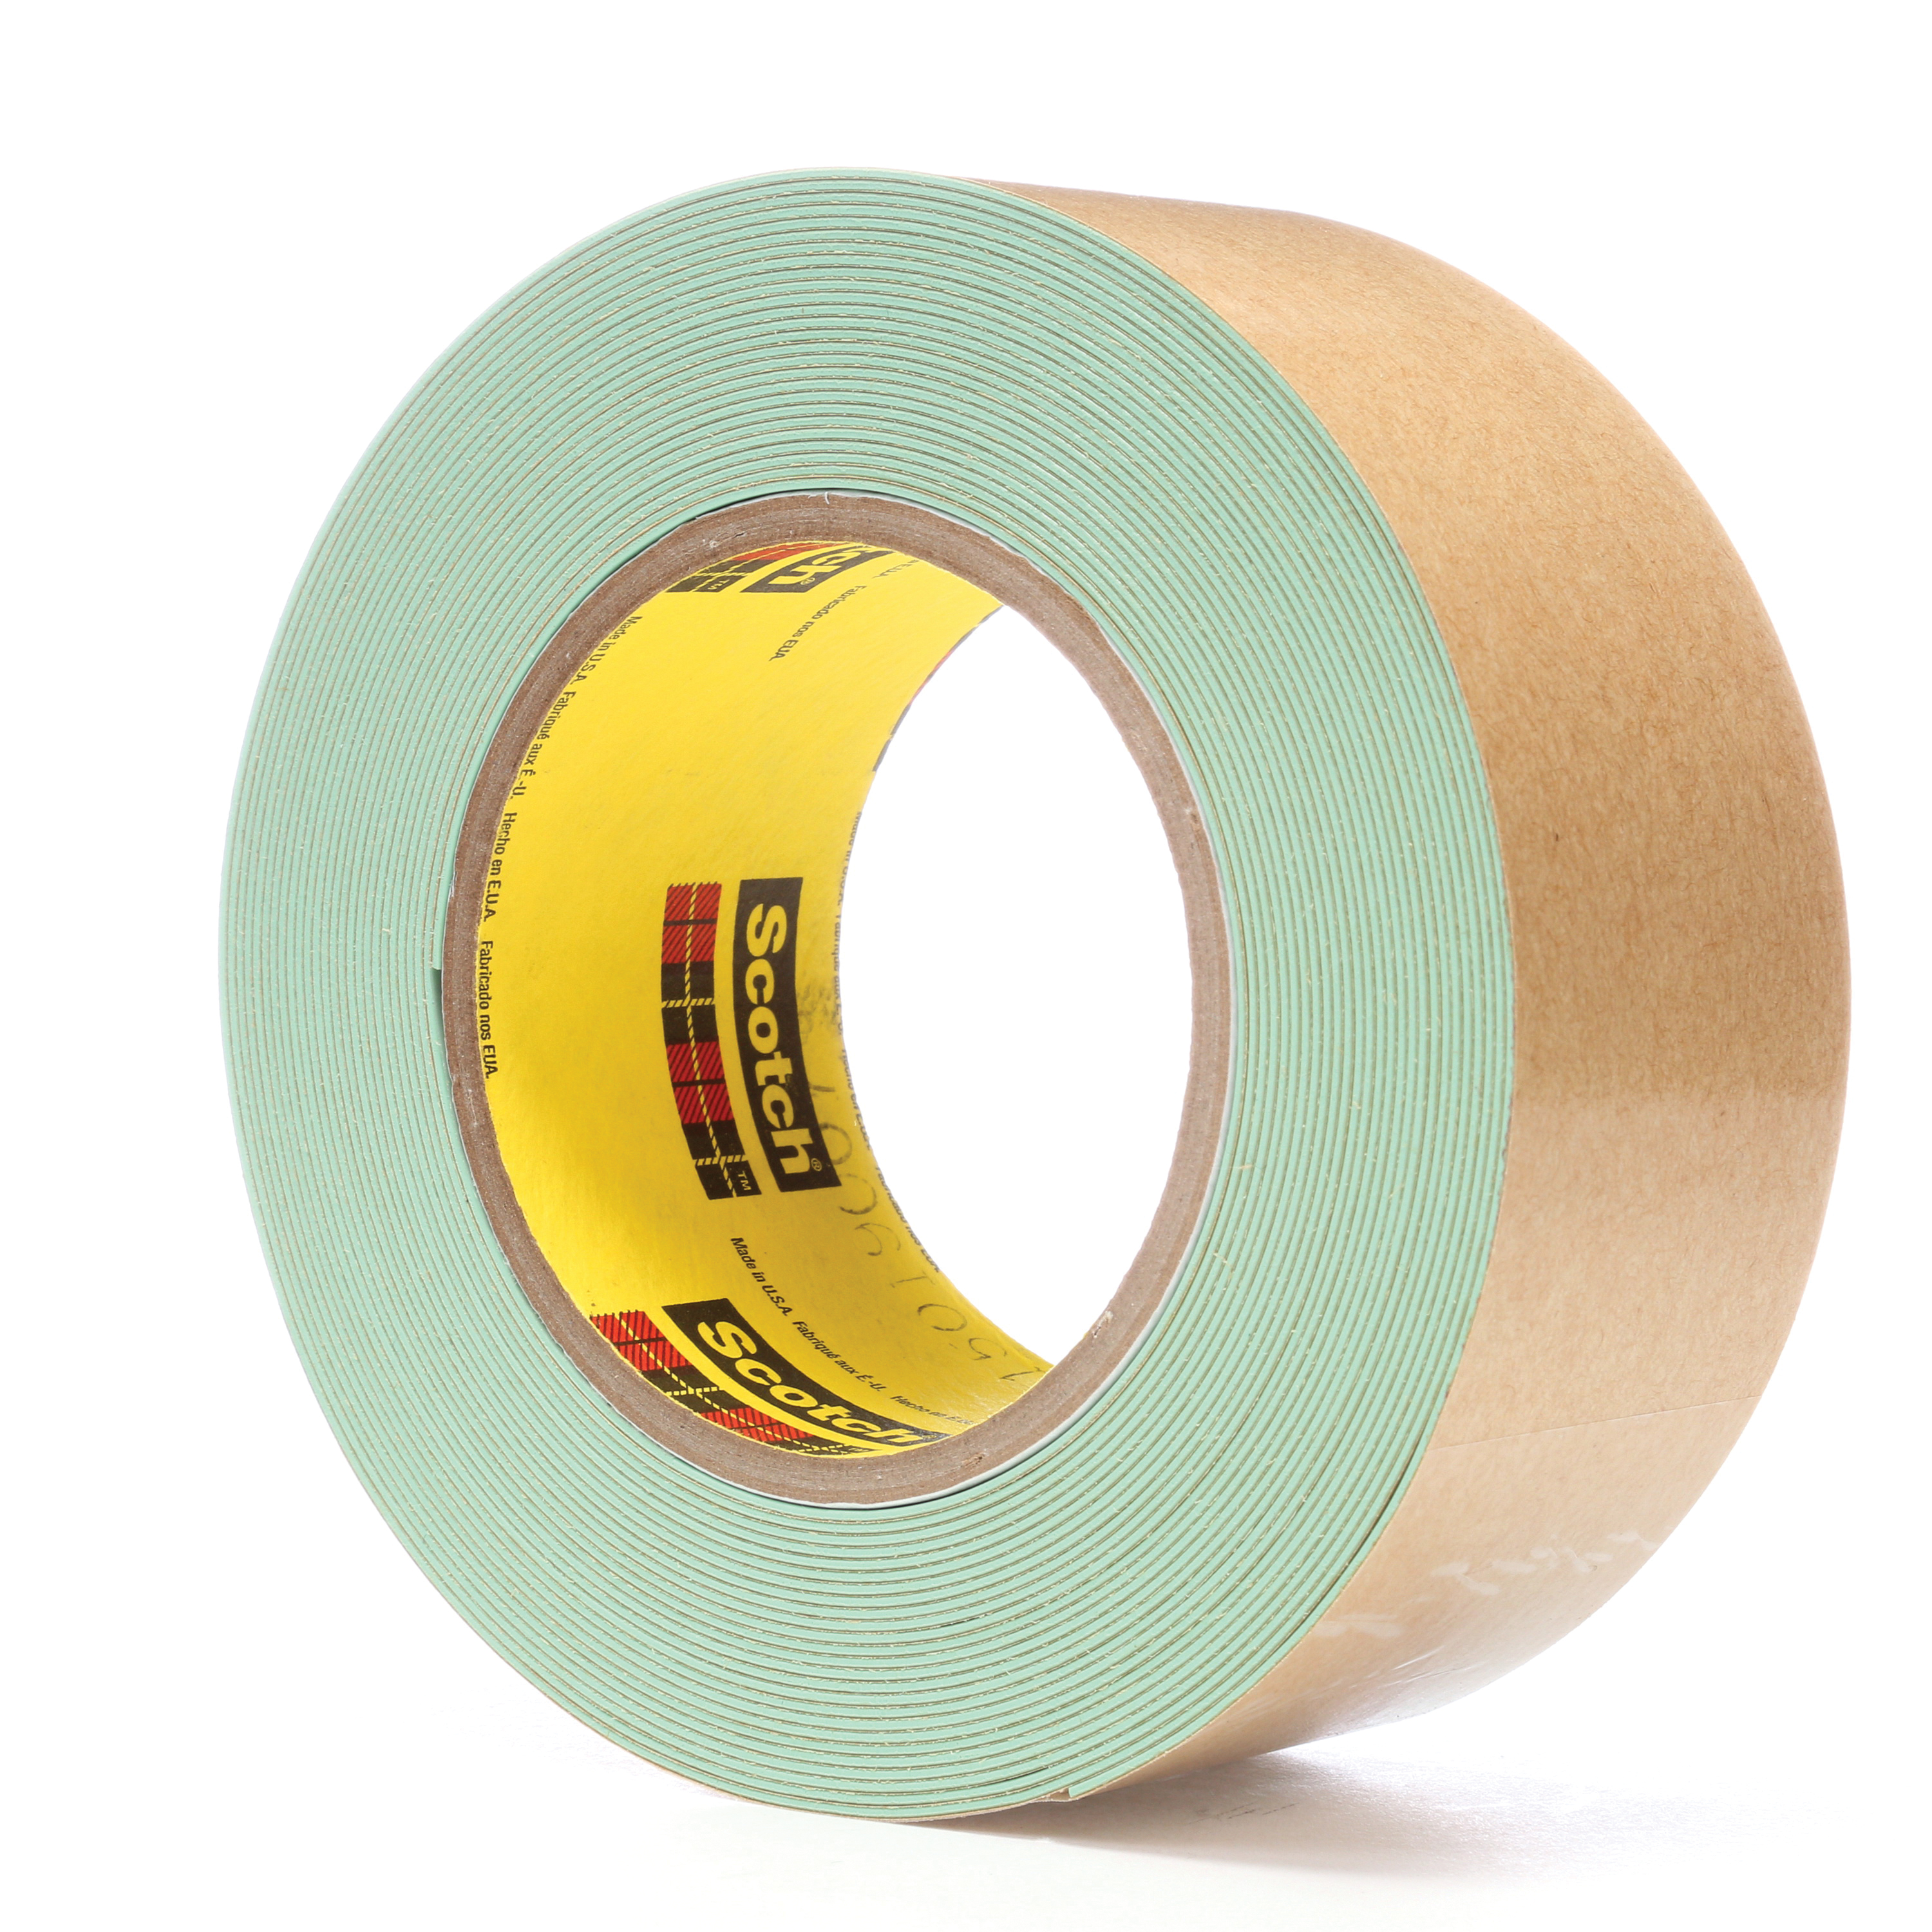 3M™ 021200-60895 Impact Stripping Tape, 10 yd L x 2 in W, 36 mil THK, Acrylic Adhesive, Rubber Backing